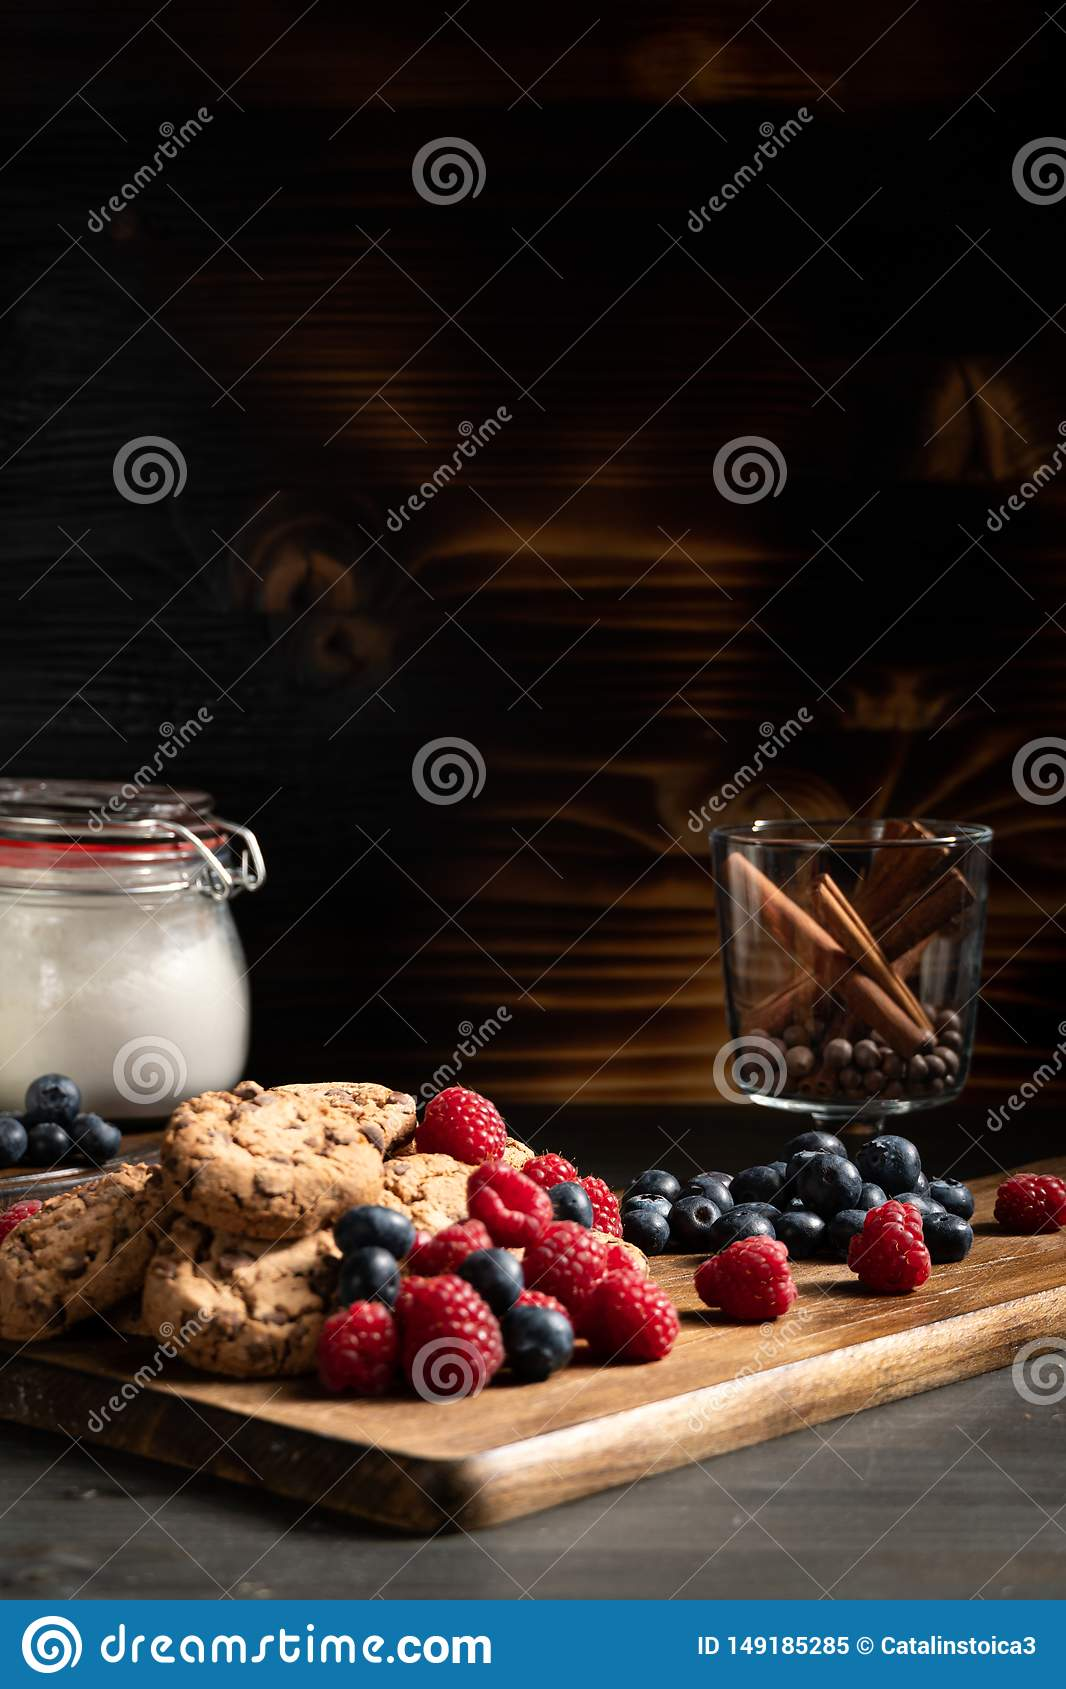 Pile of delicious biscuits on wooden board